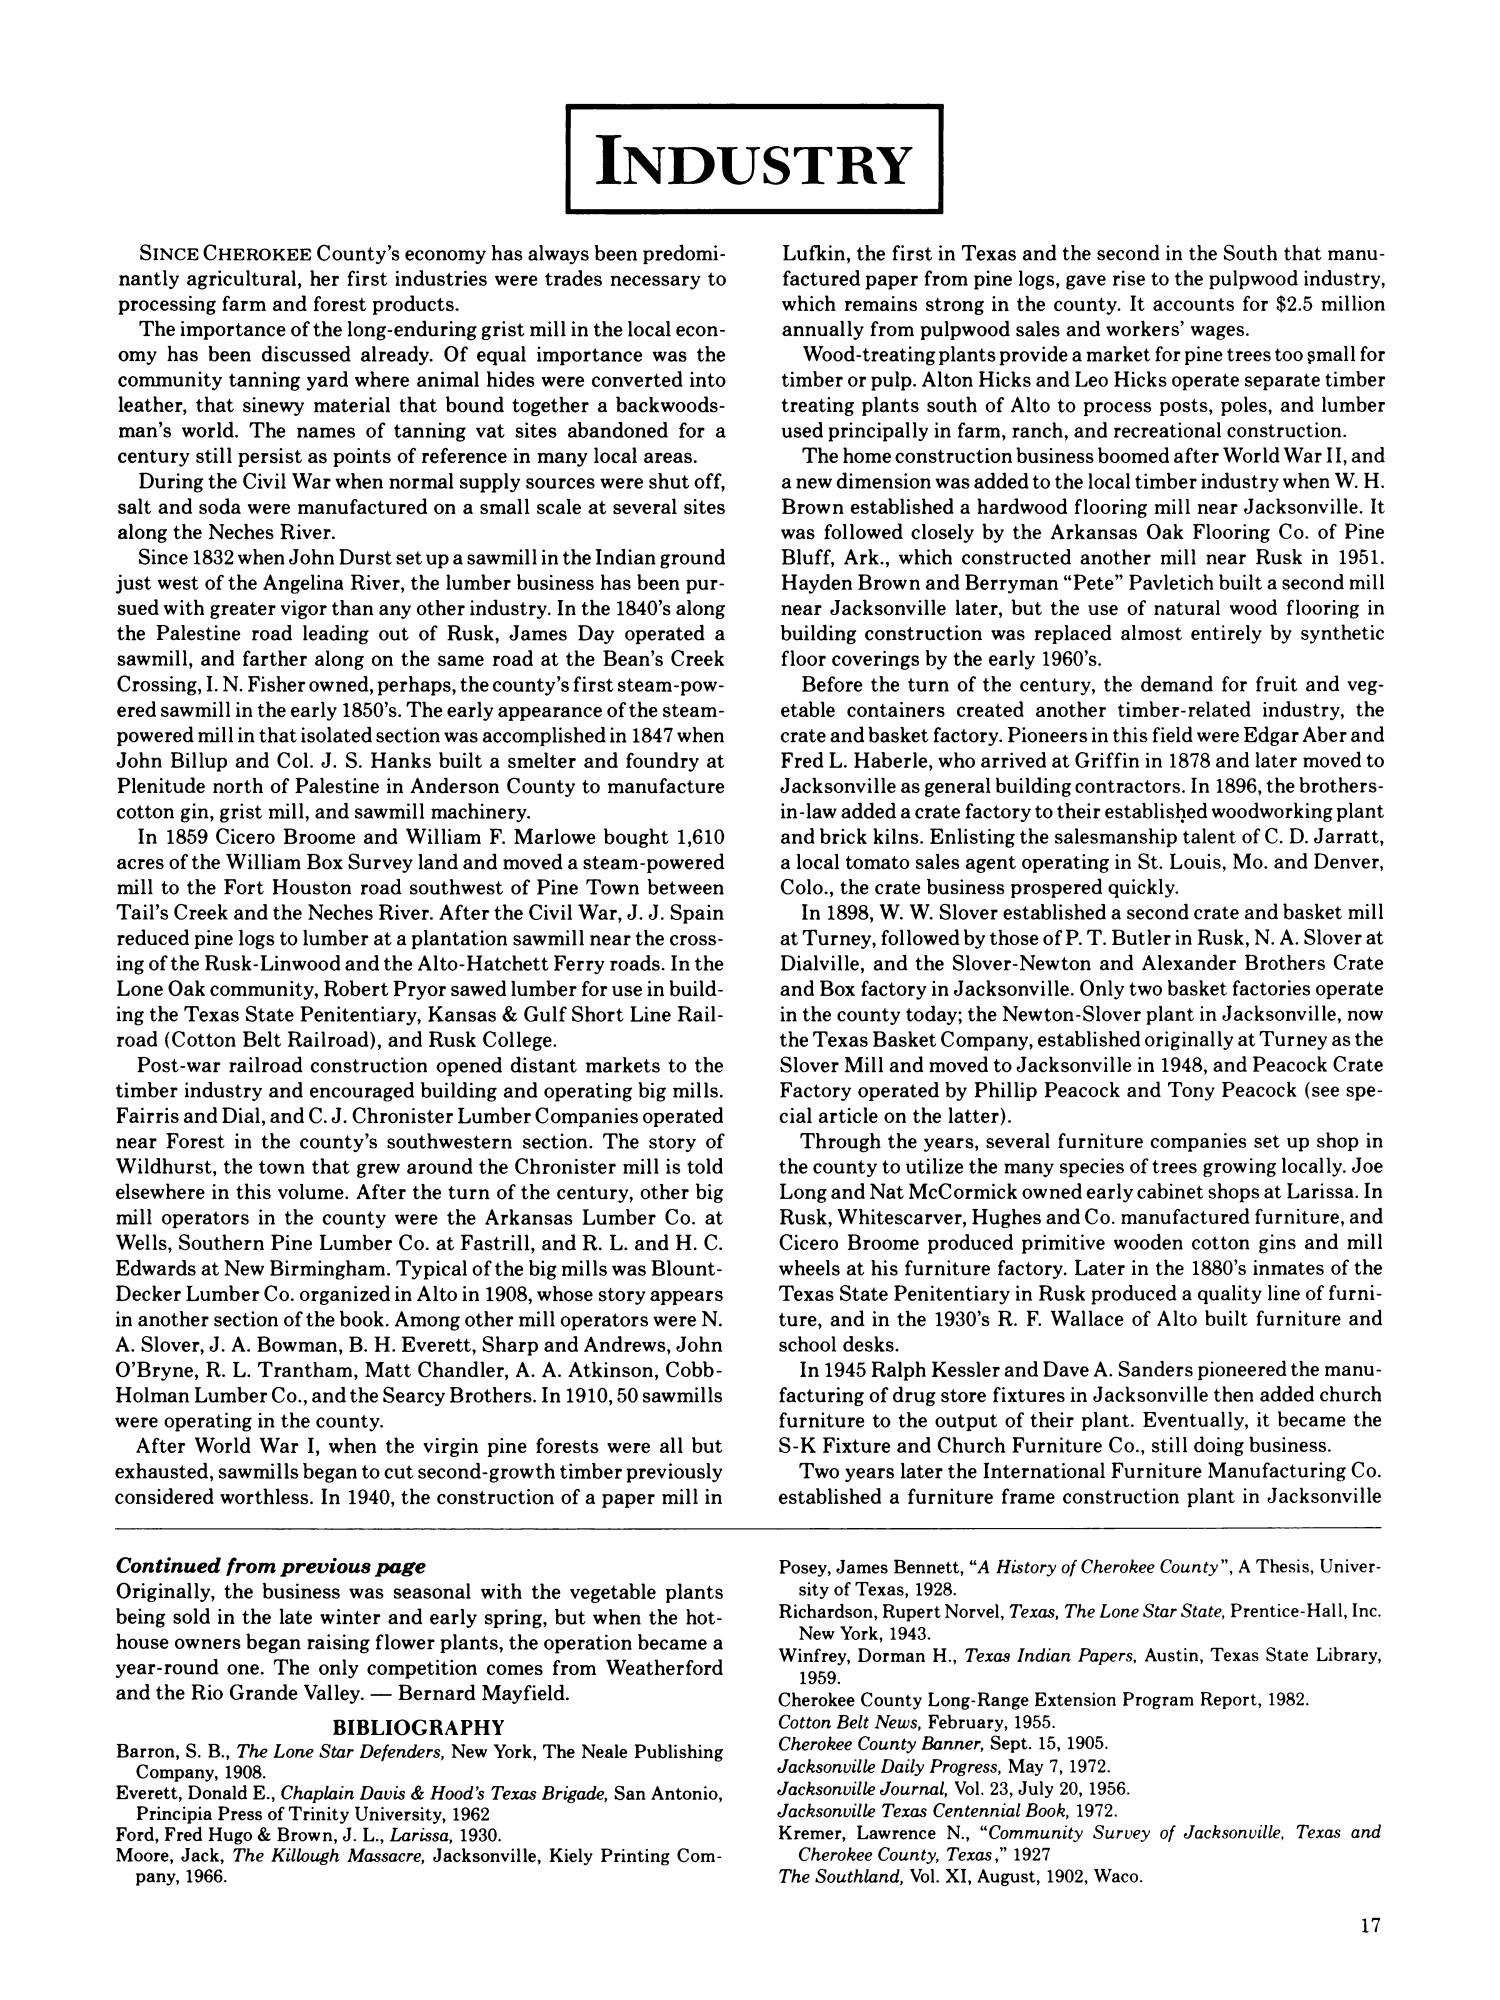 Cherokee County History Page 17 The Portal to Texas History